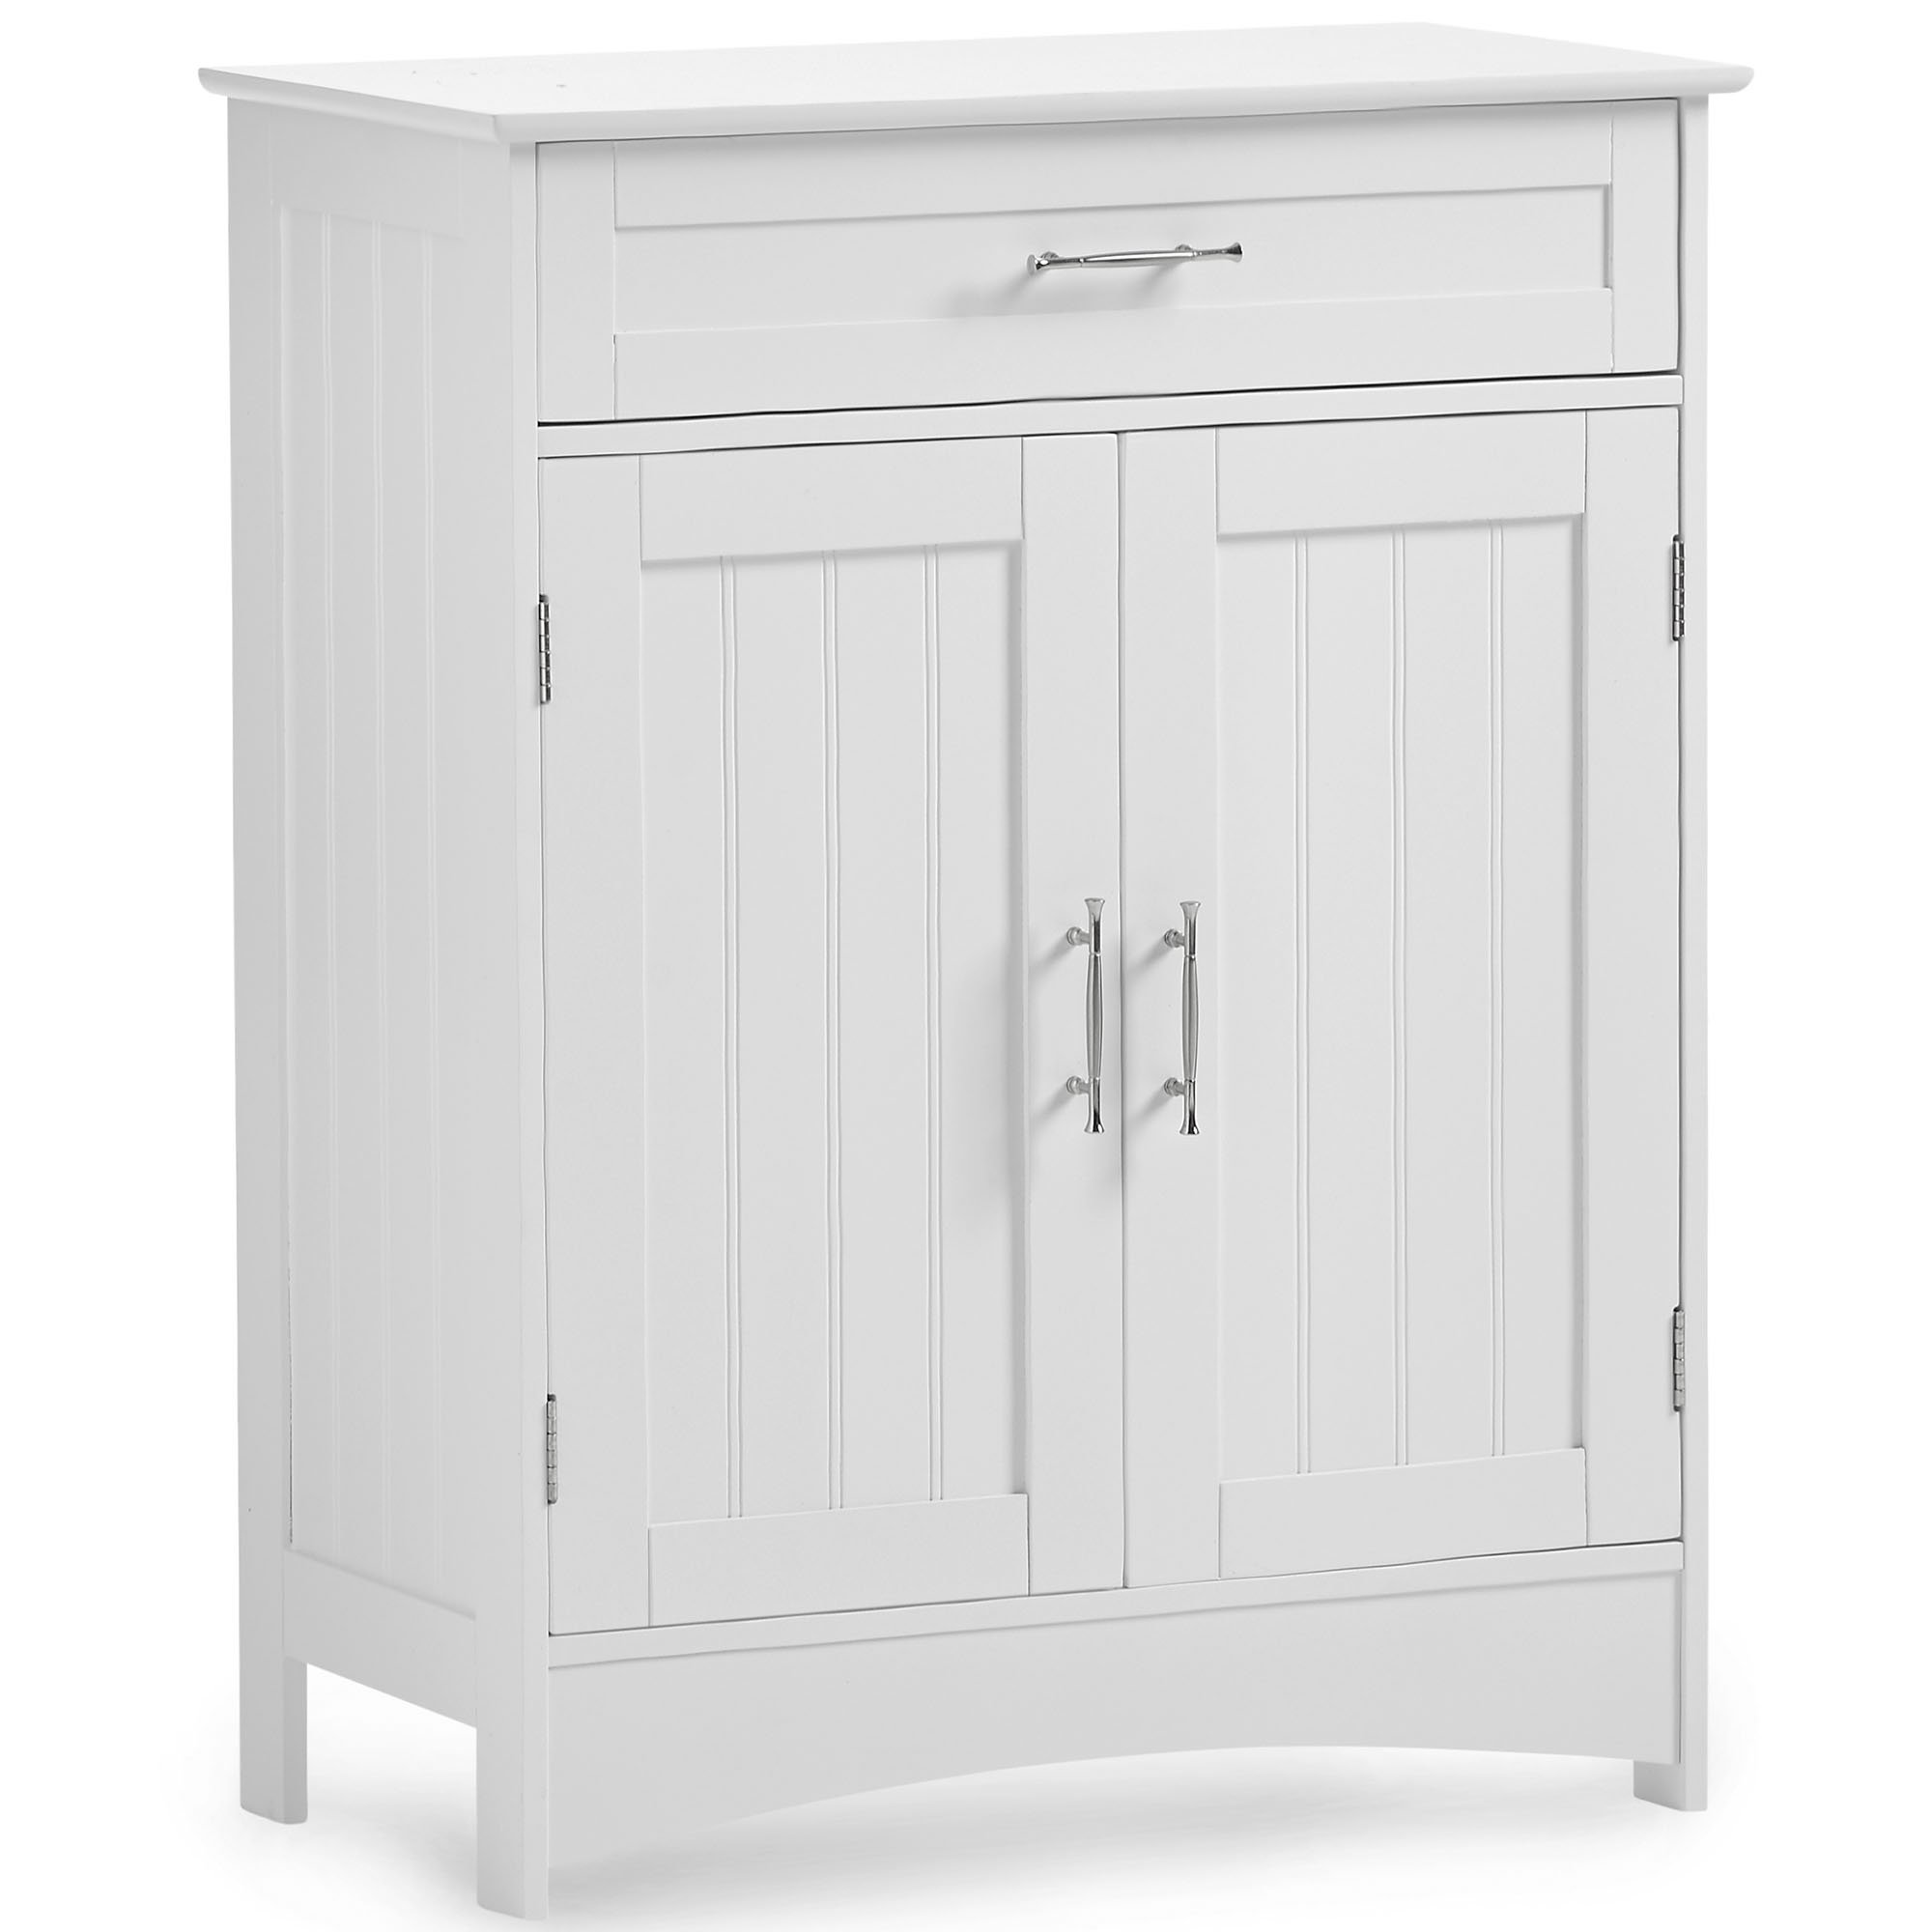 VonHaus Bathroom Floor Cabinet Storage Unit with Drawer and 2 Doors - Classic White Furniture with Chrome Handles (Includes All Hardware)